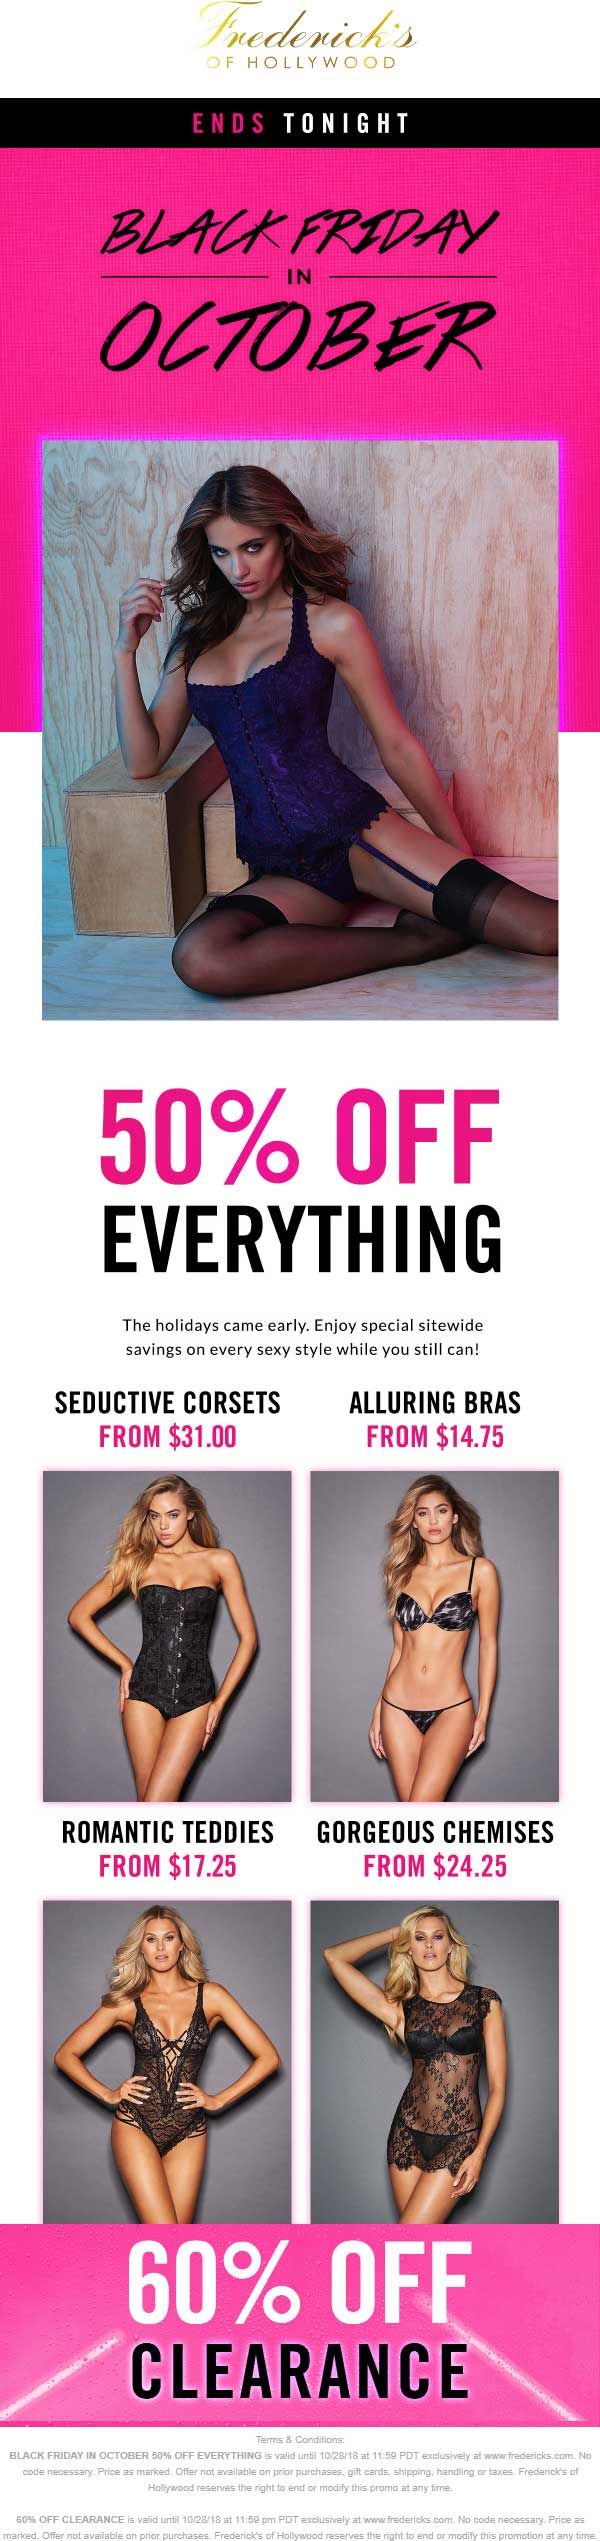 Fredericks of Hollywood Coupon July 2019 50% off everything today at Fredericks of Hollywood